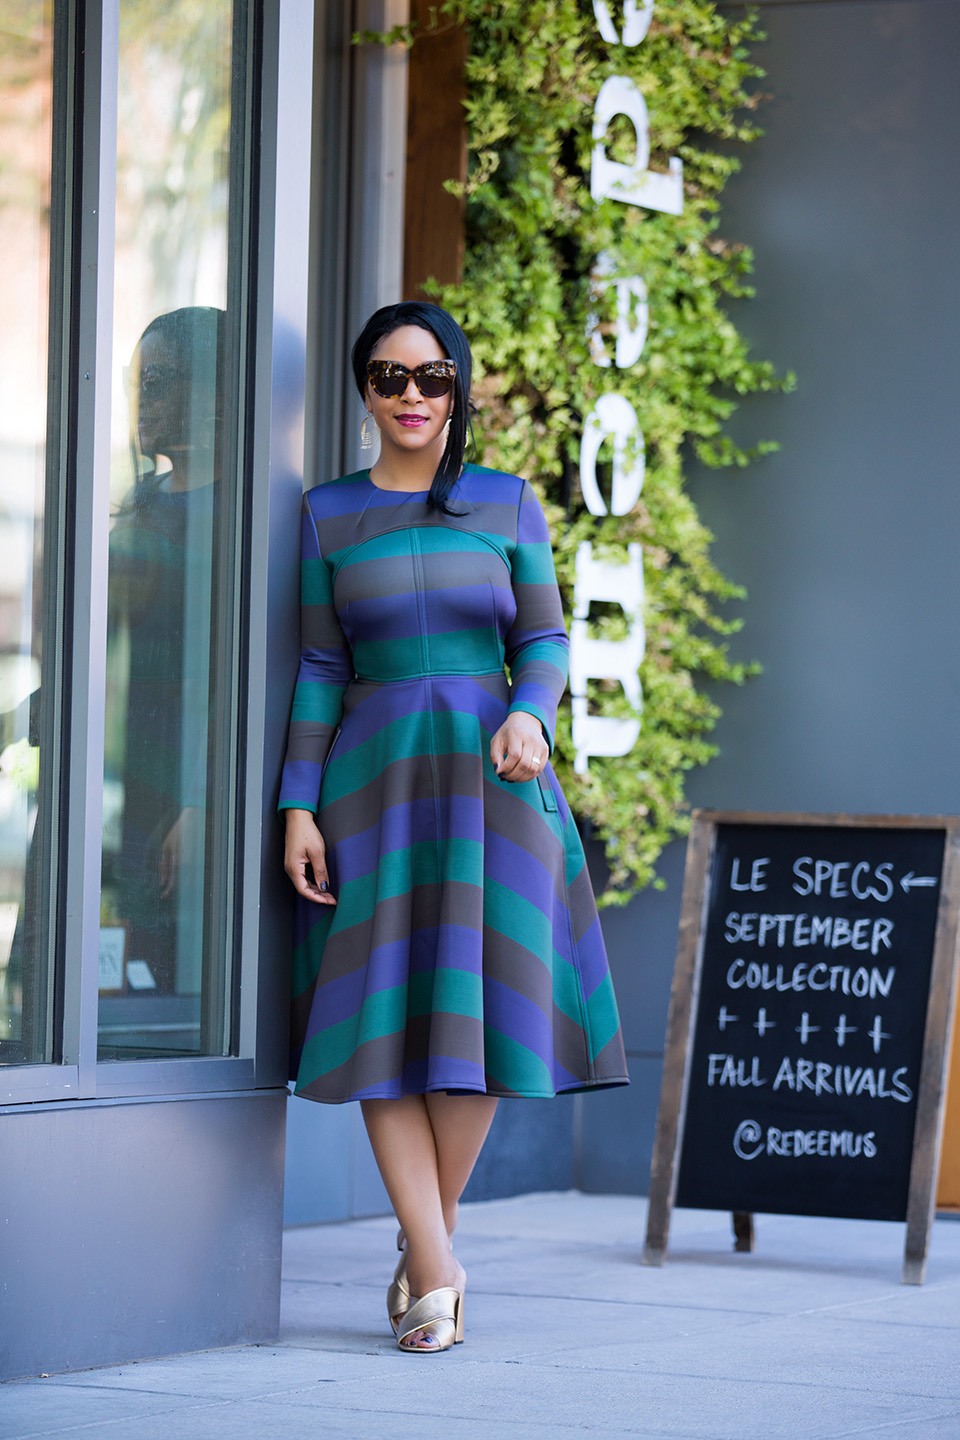 The Mullet Dress - What I'm Wearing: Chicwish Demure Green Striped Open-back Dress, Topshop RIOT Flared gold Mules, House of Harlow 1960 Chelsea Cat Eye Sunglasses in tortoiseshell, Charming Charlie Waved Layer Dangle Earrings